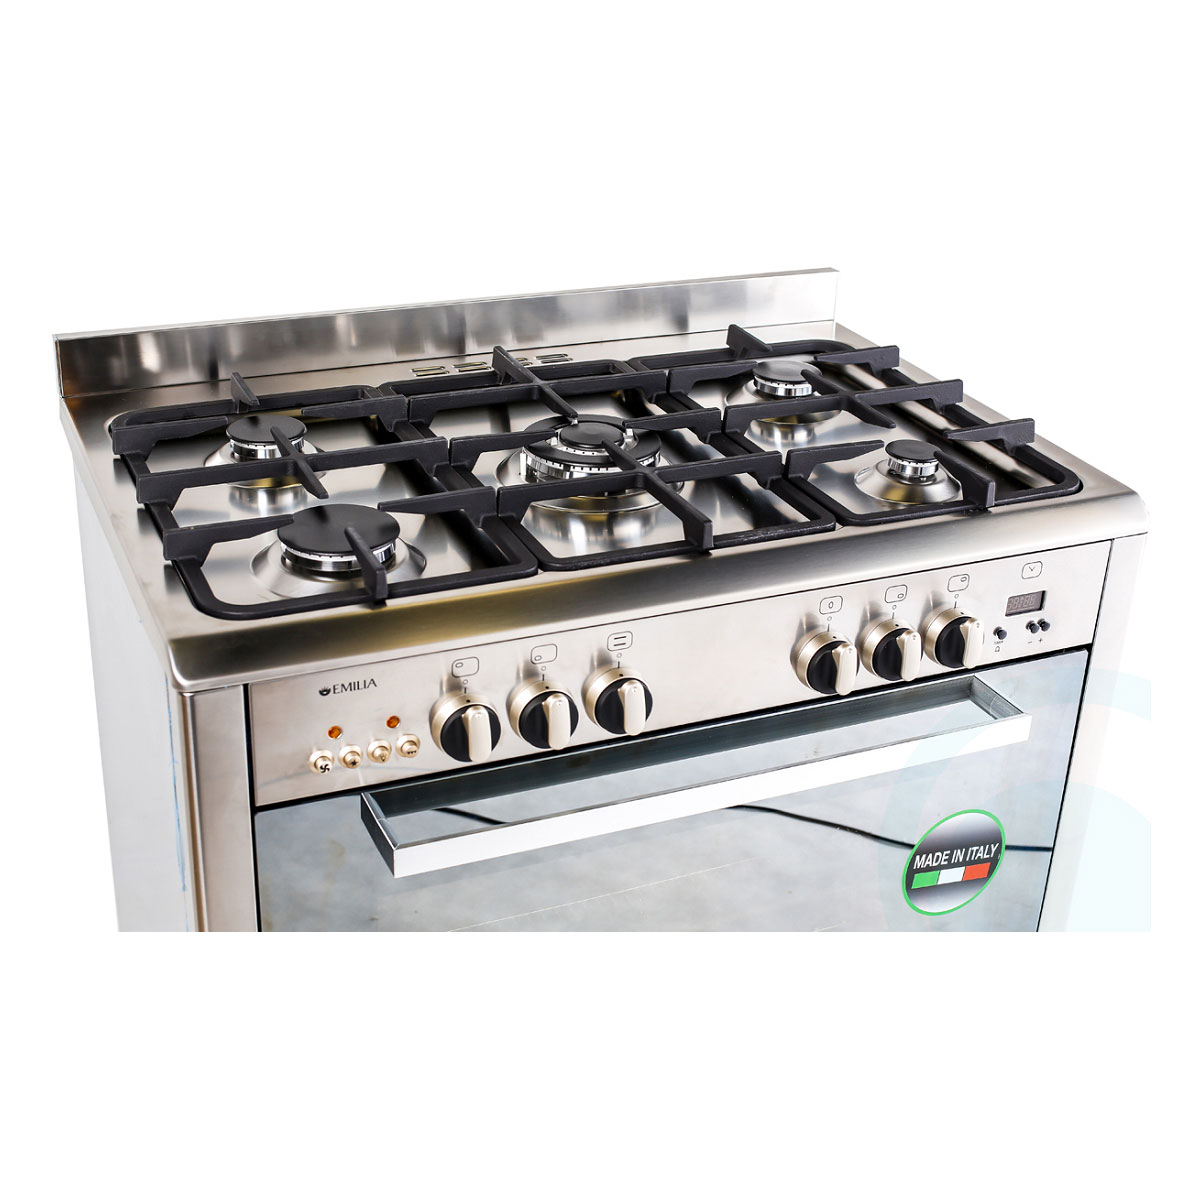 how to use a gas stove safely